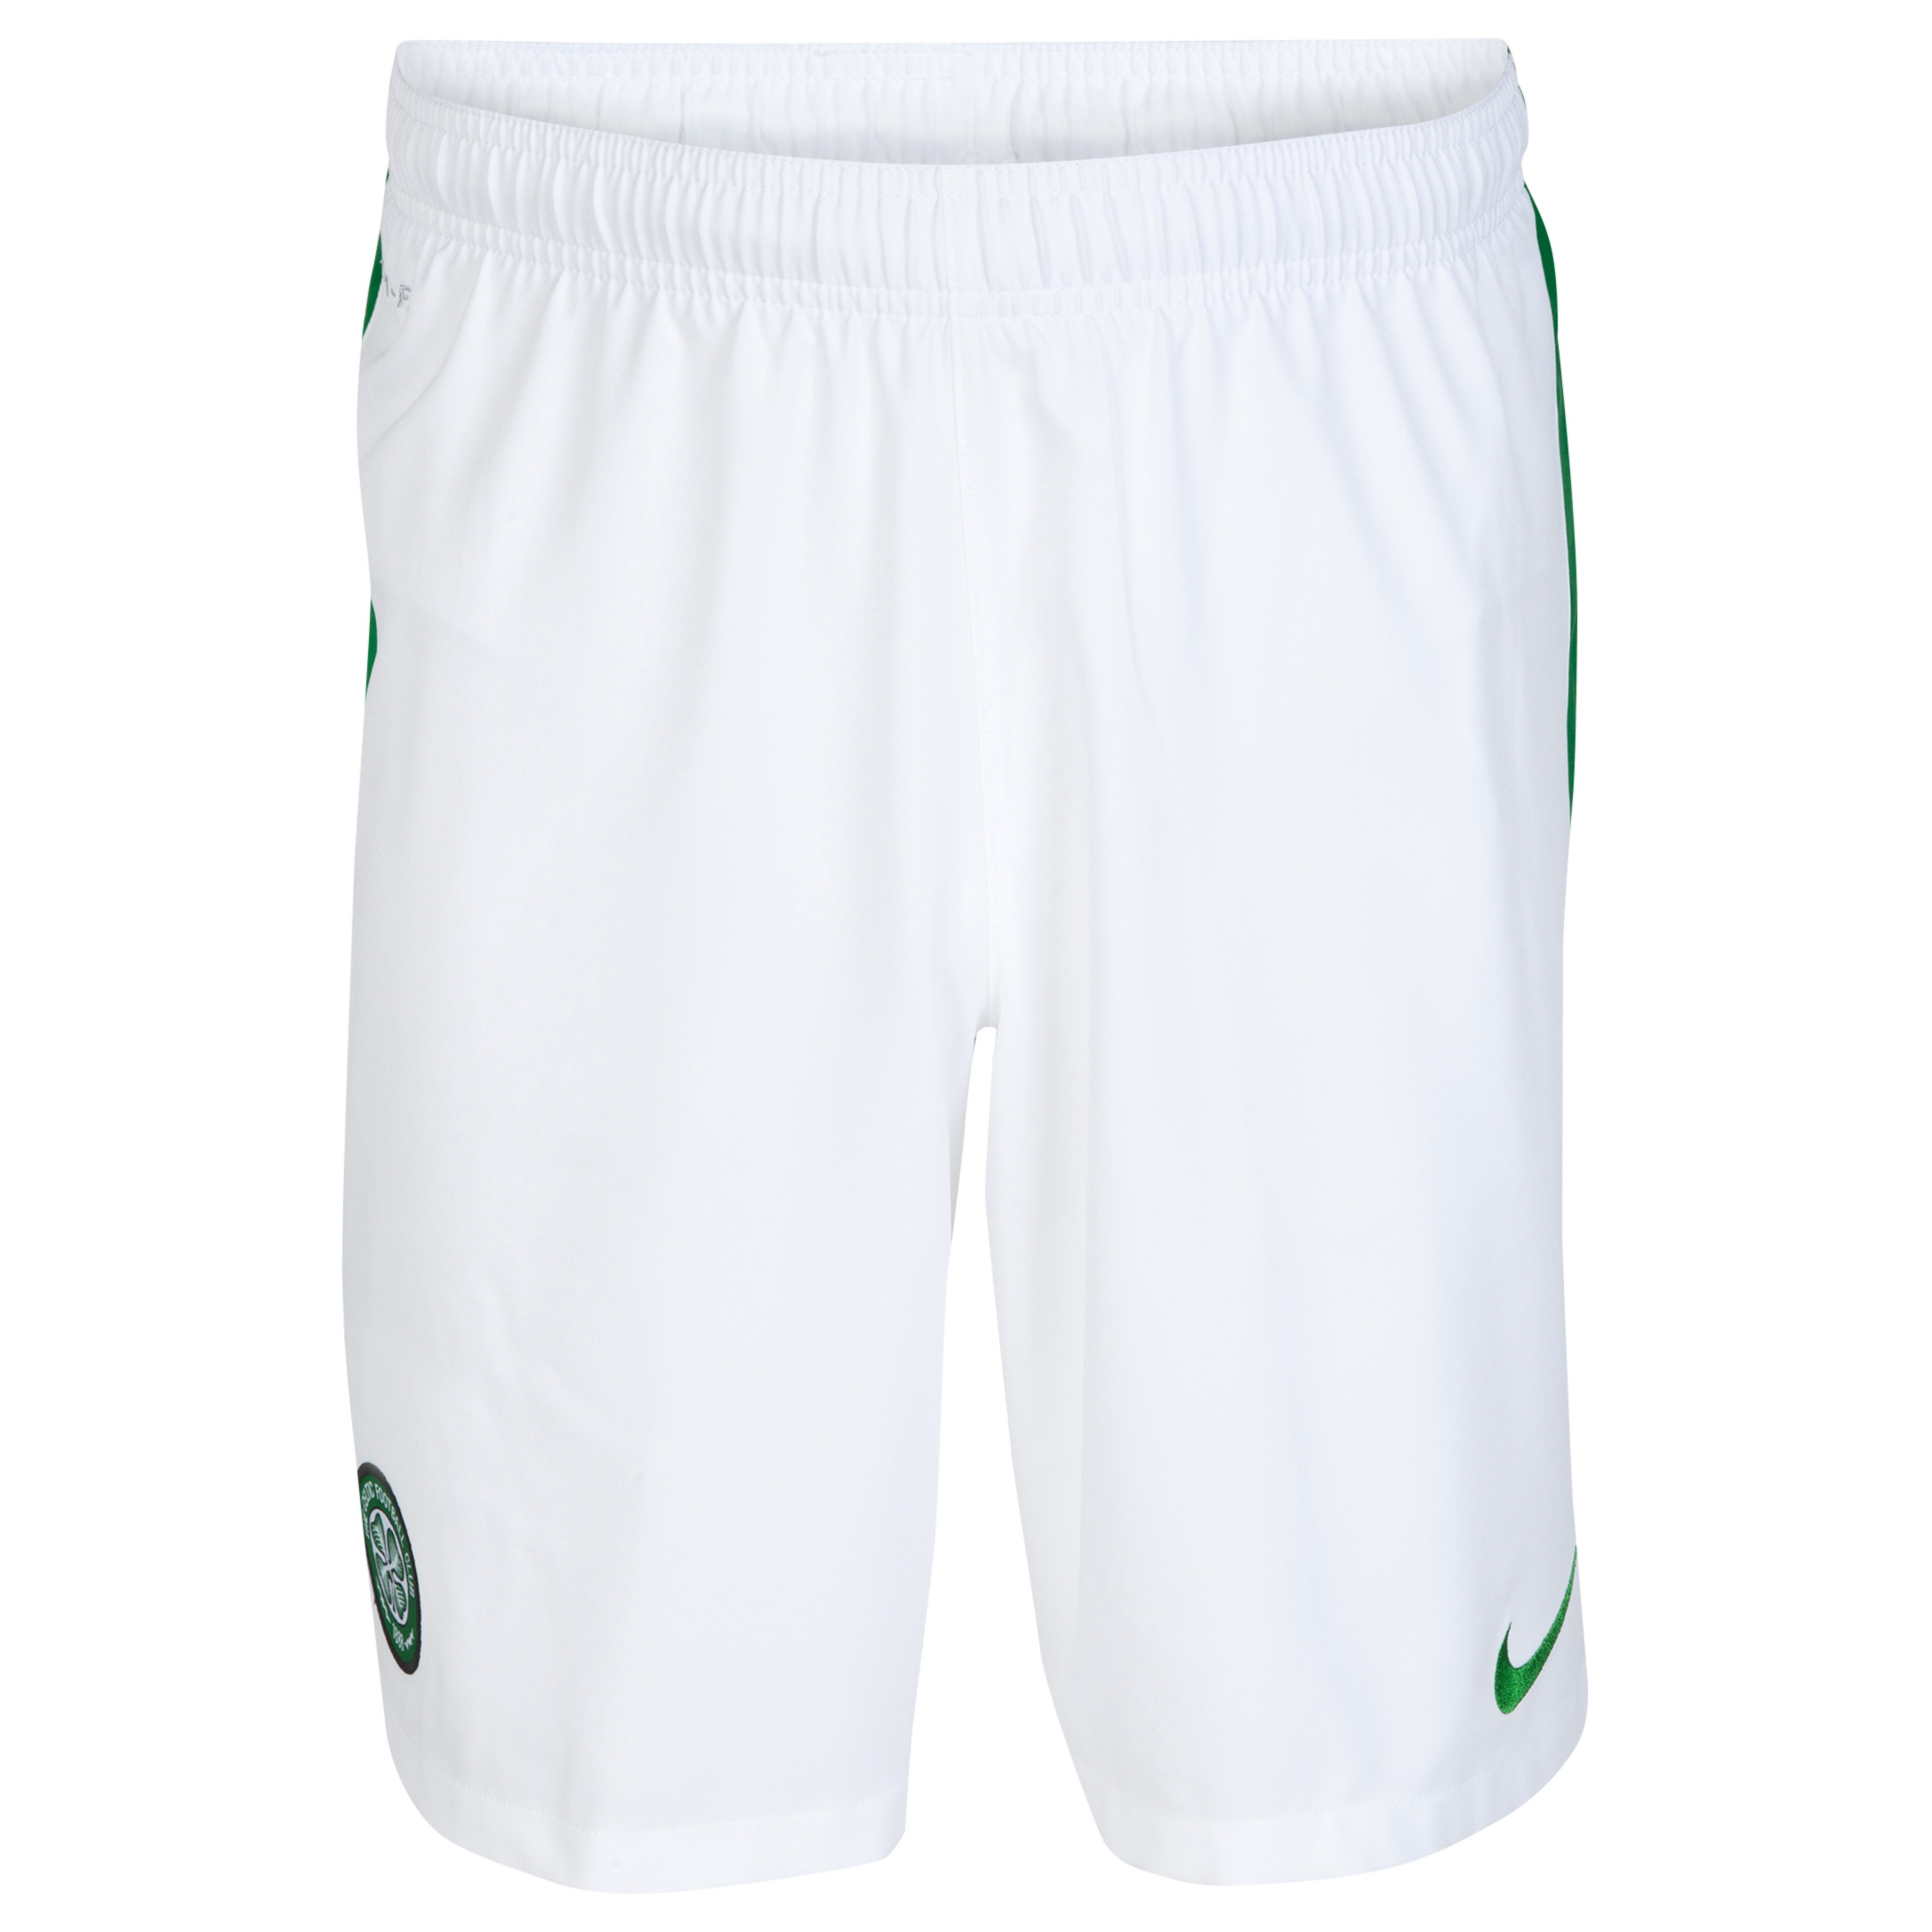 Celtic 3rd Short 2014/15 - Kids White